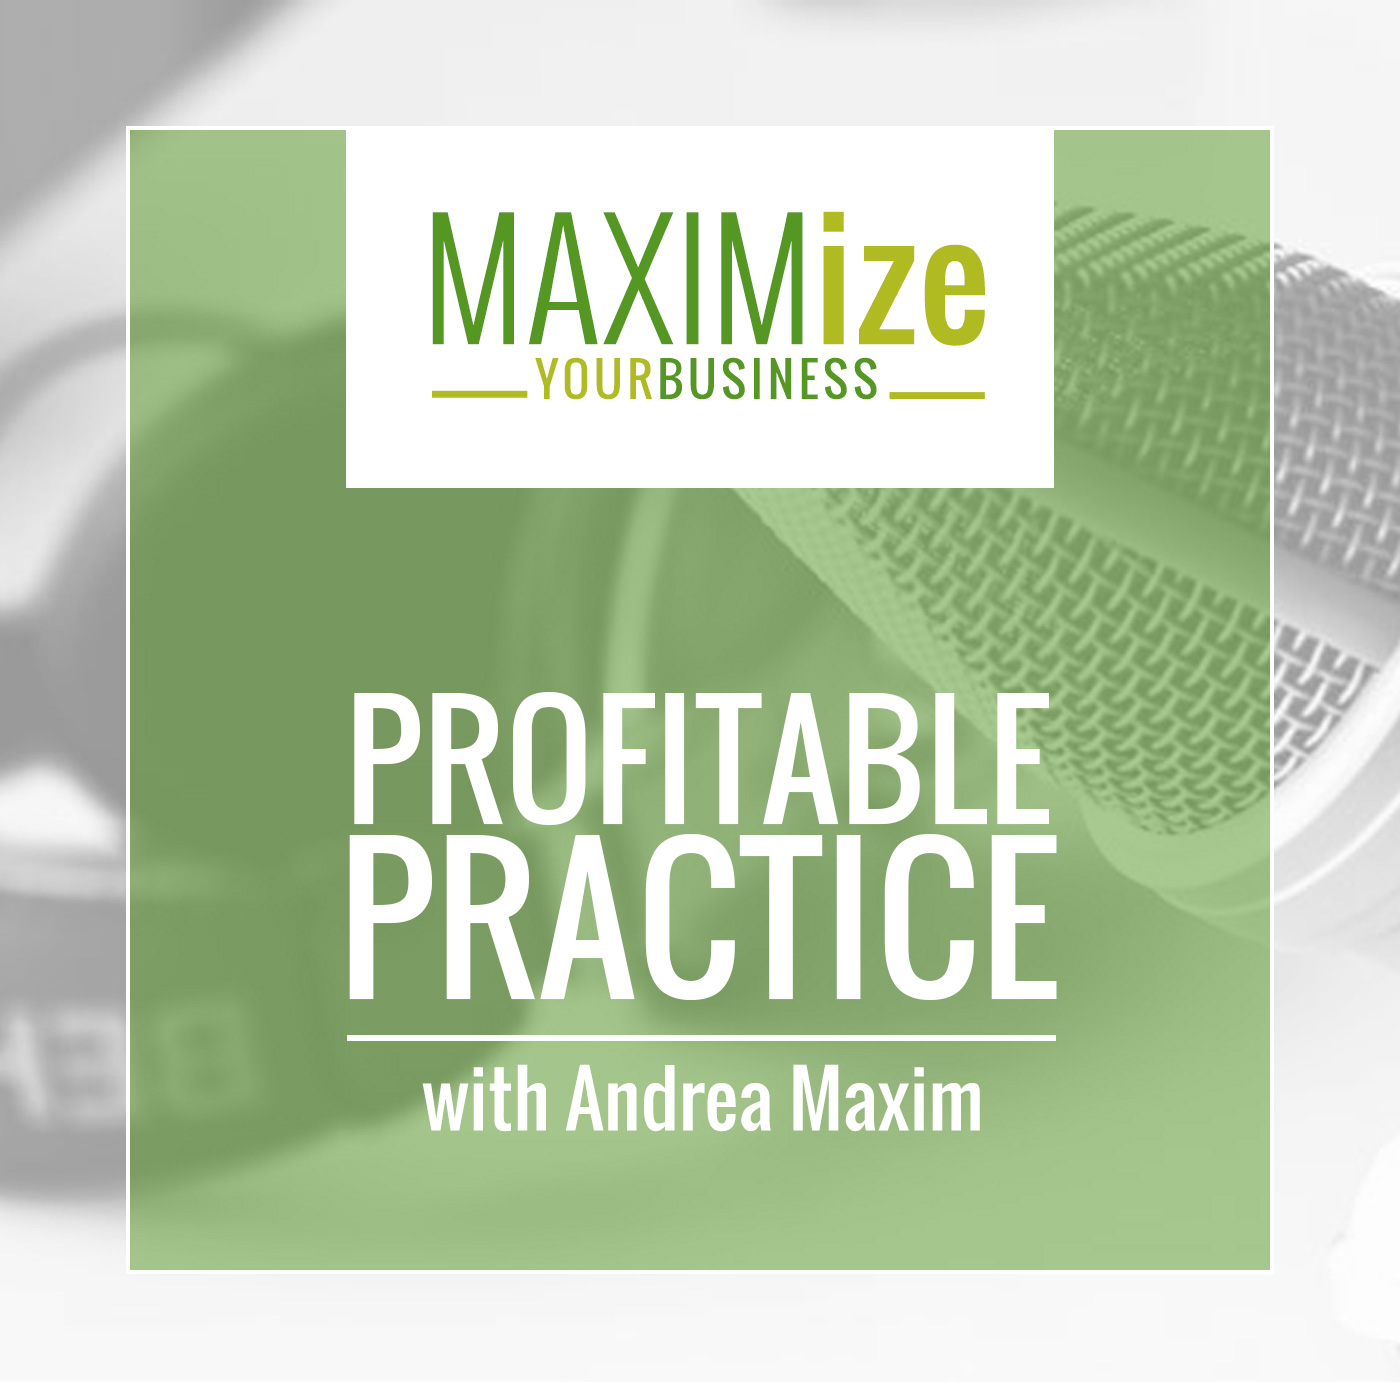 Profitable Practice Podcast with Andrea Maxim